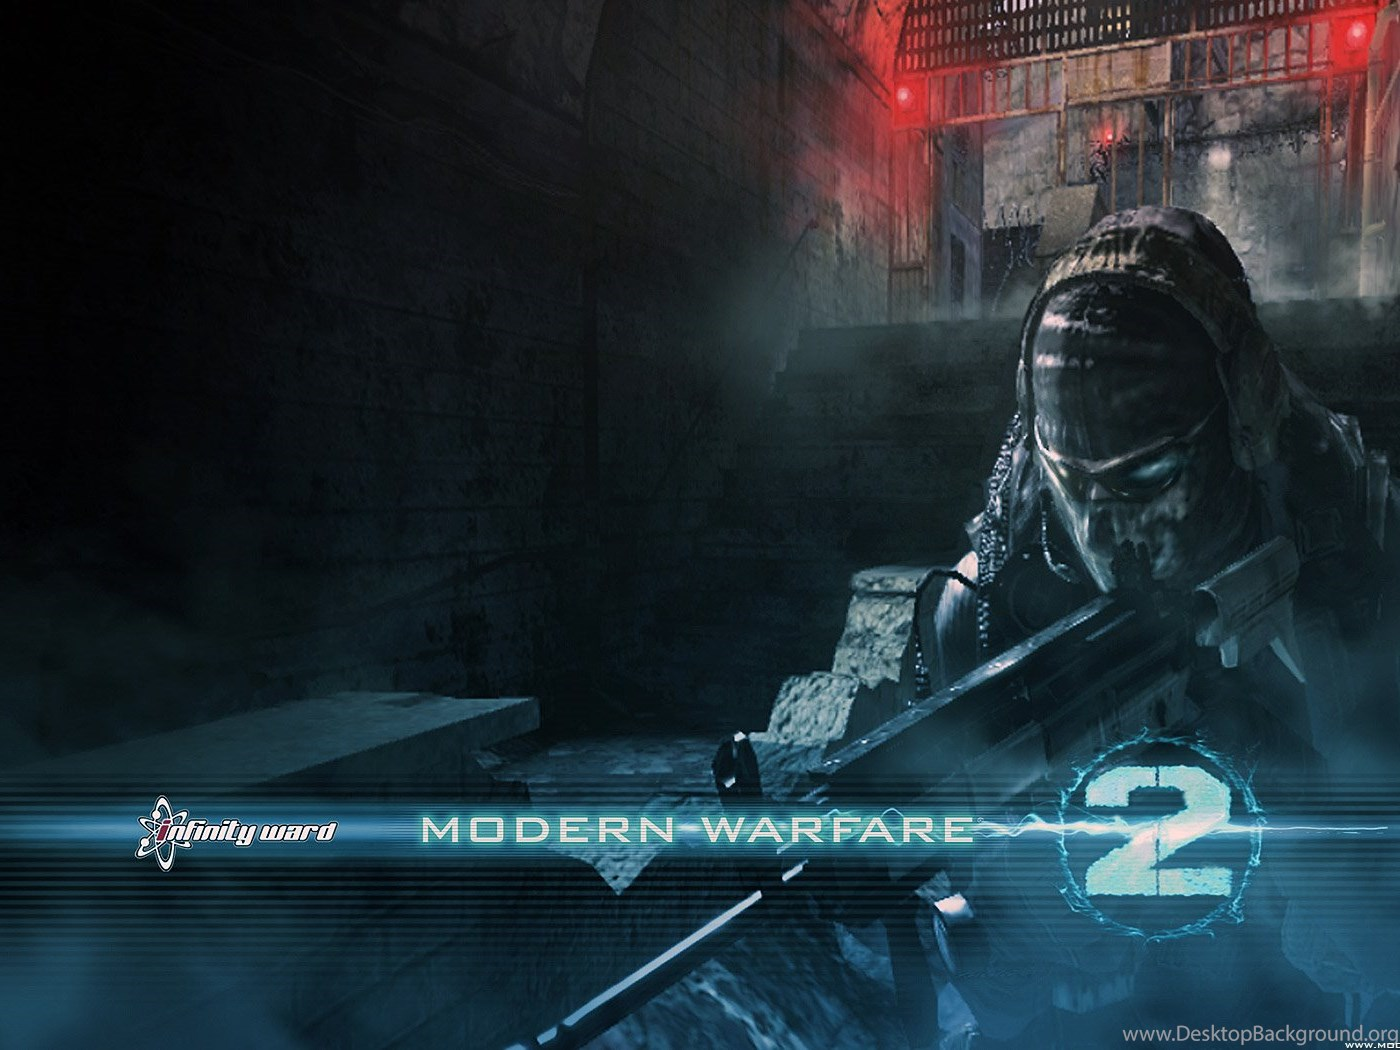 Call Of Duty Modern Warfare 2 Ghost Wallpapers Hd Imgmob Desktop